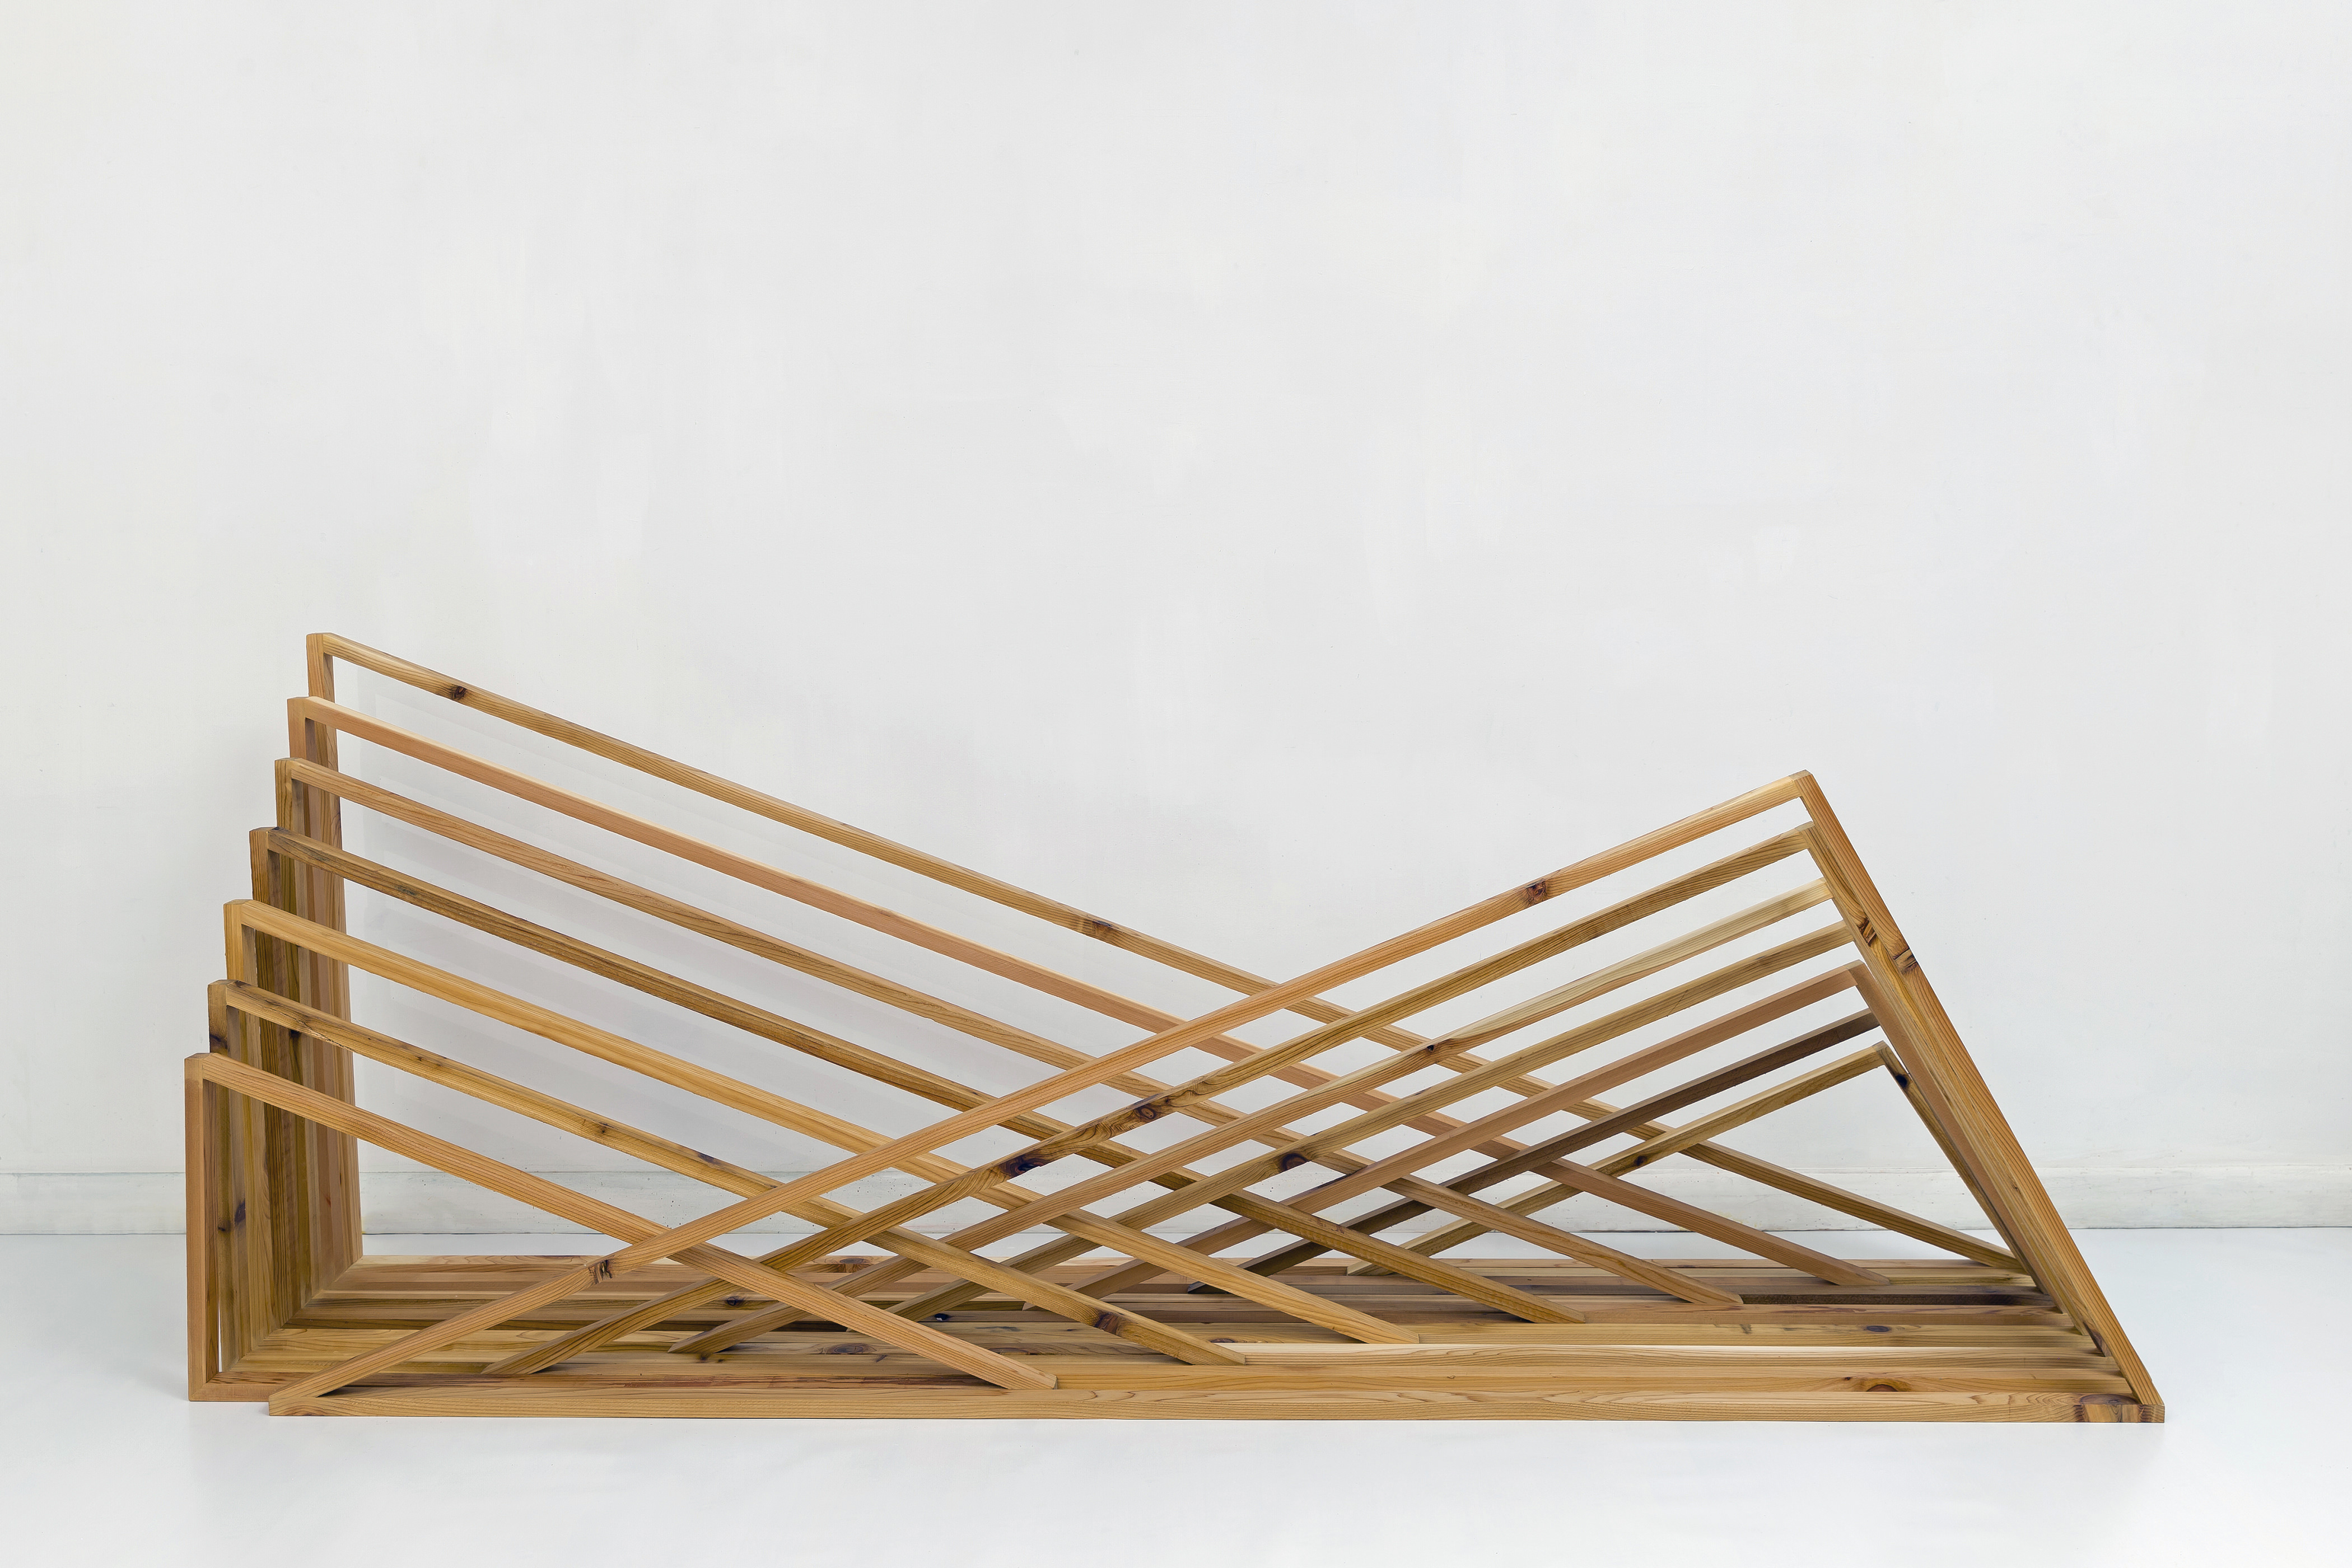 Rebecca Ward, soulmates, 2015, cedar and hardware, 87 x 33.5 x 21 in